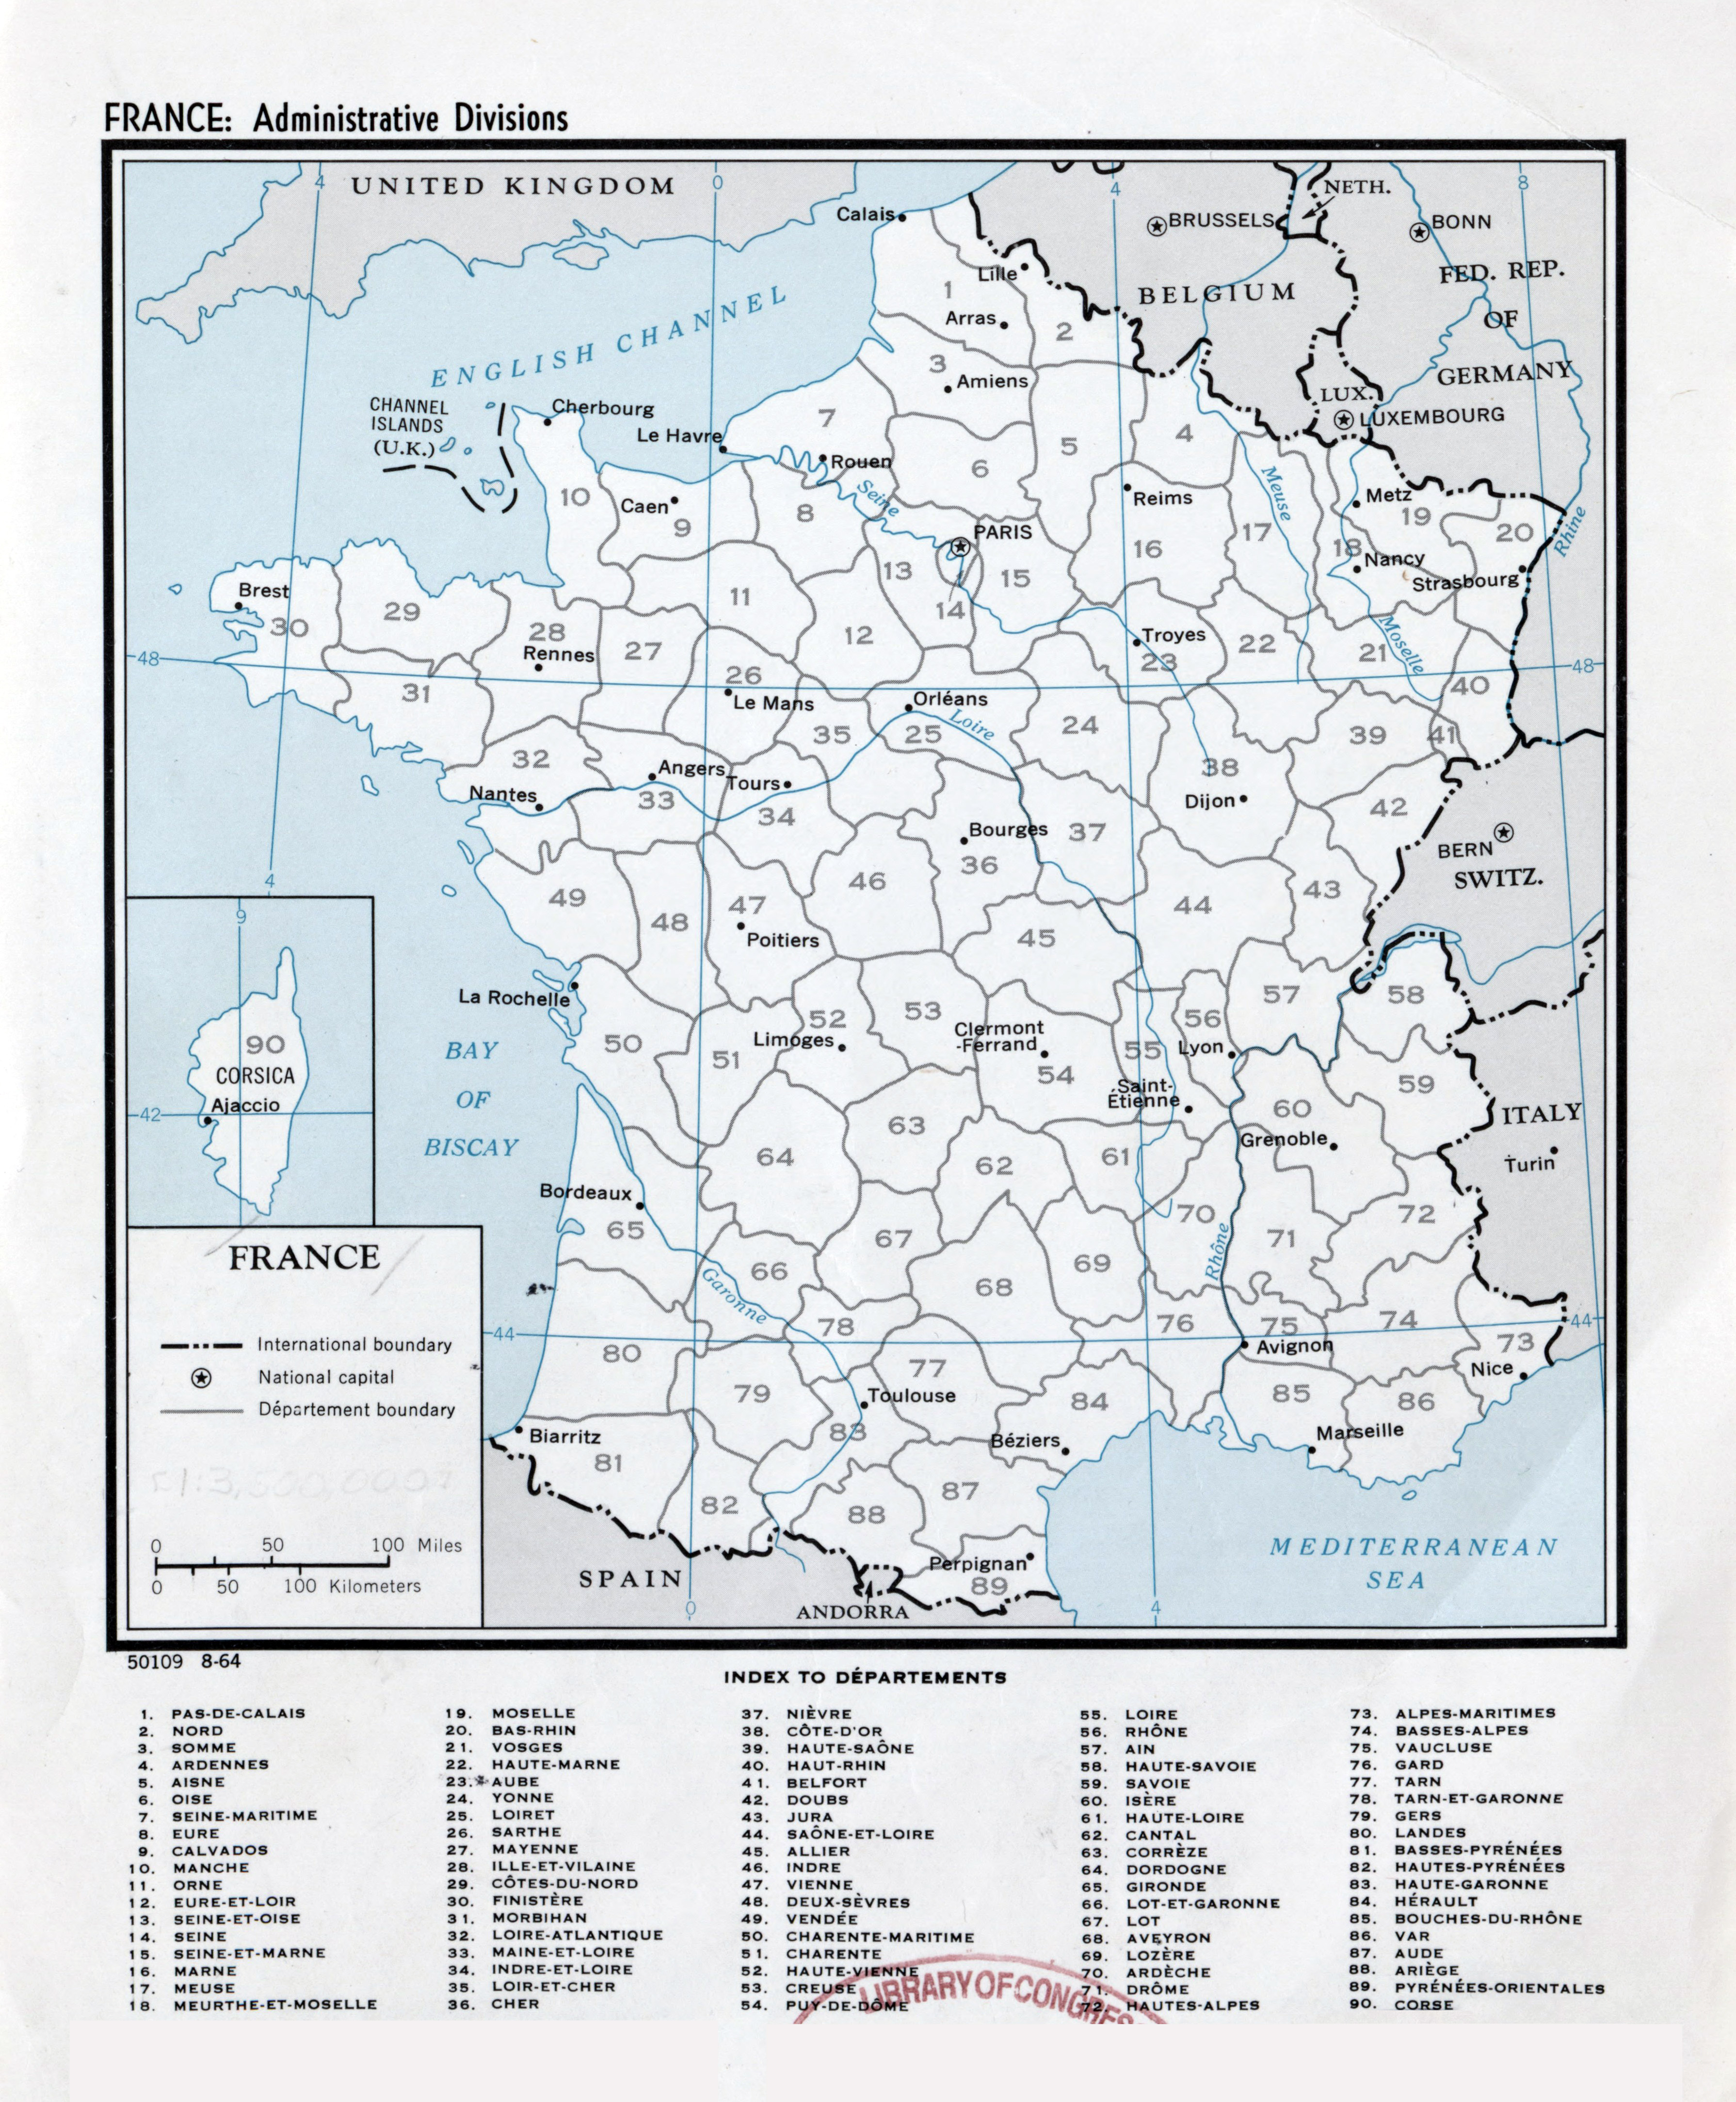 Large Scale Map Of France.Large Scale Administrative Divisions Map Of France 1964